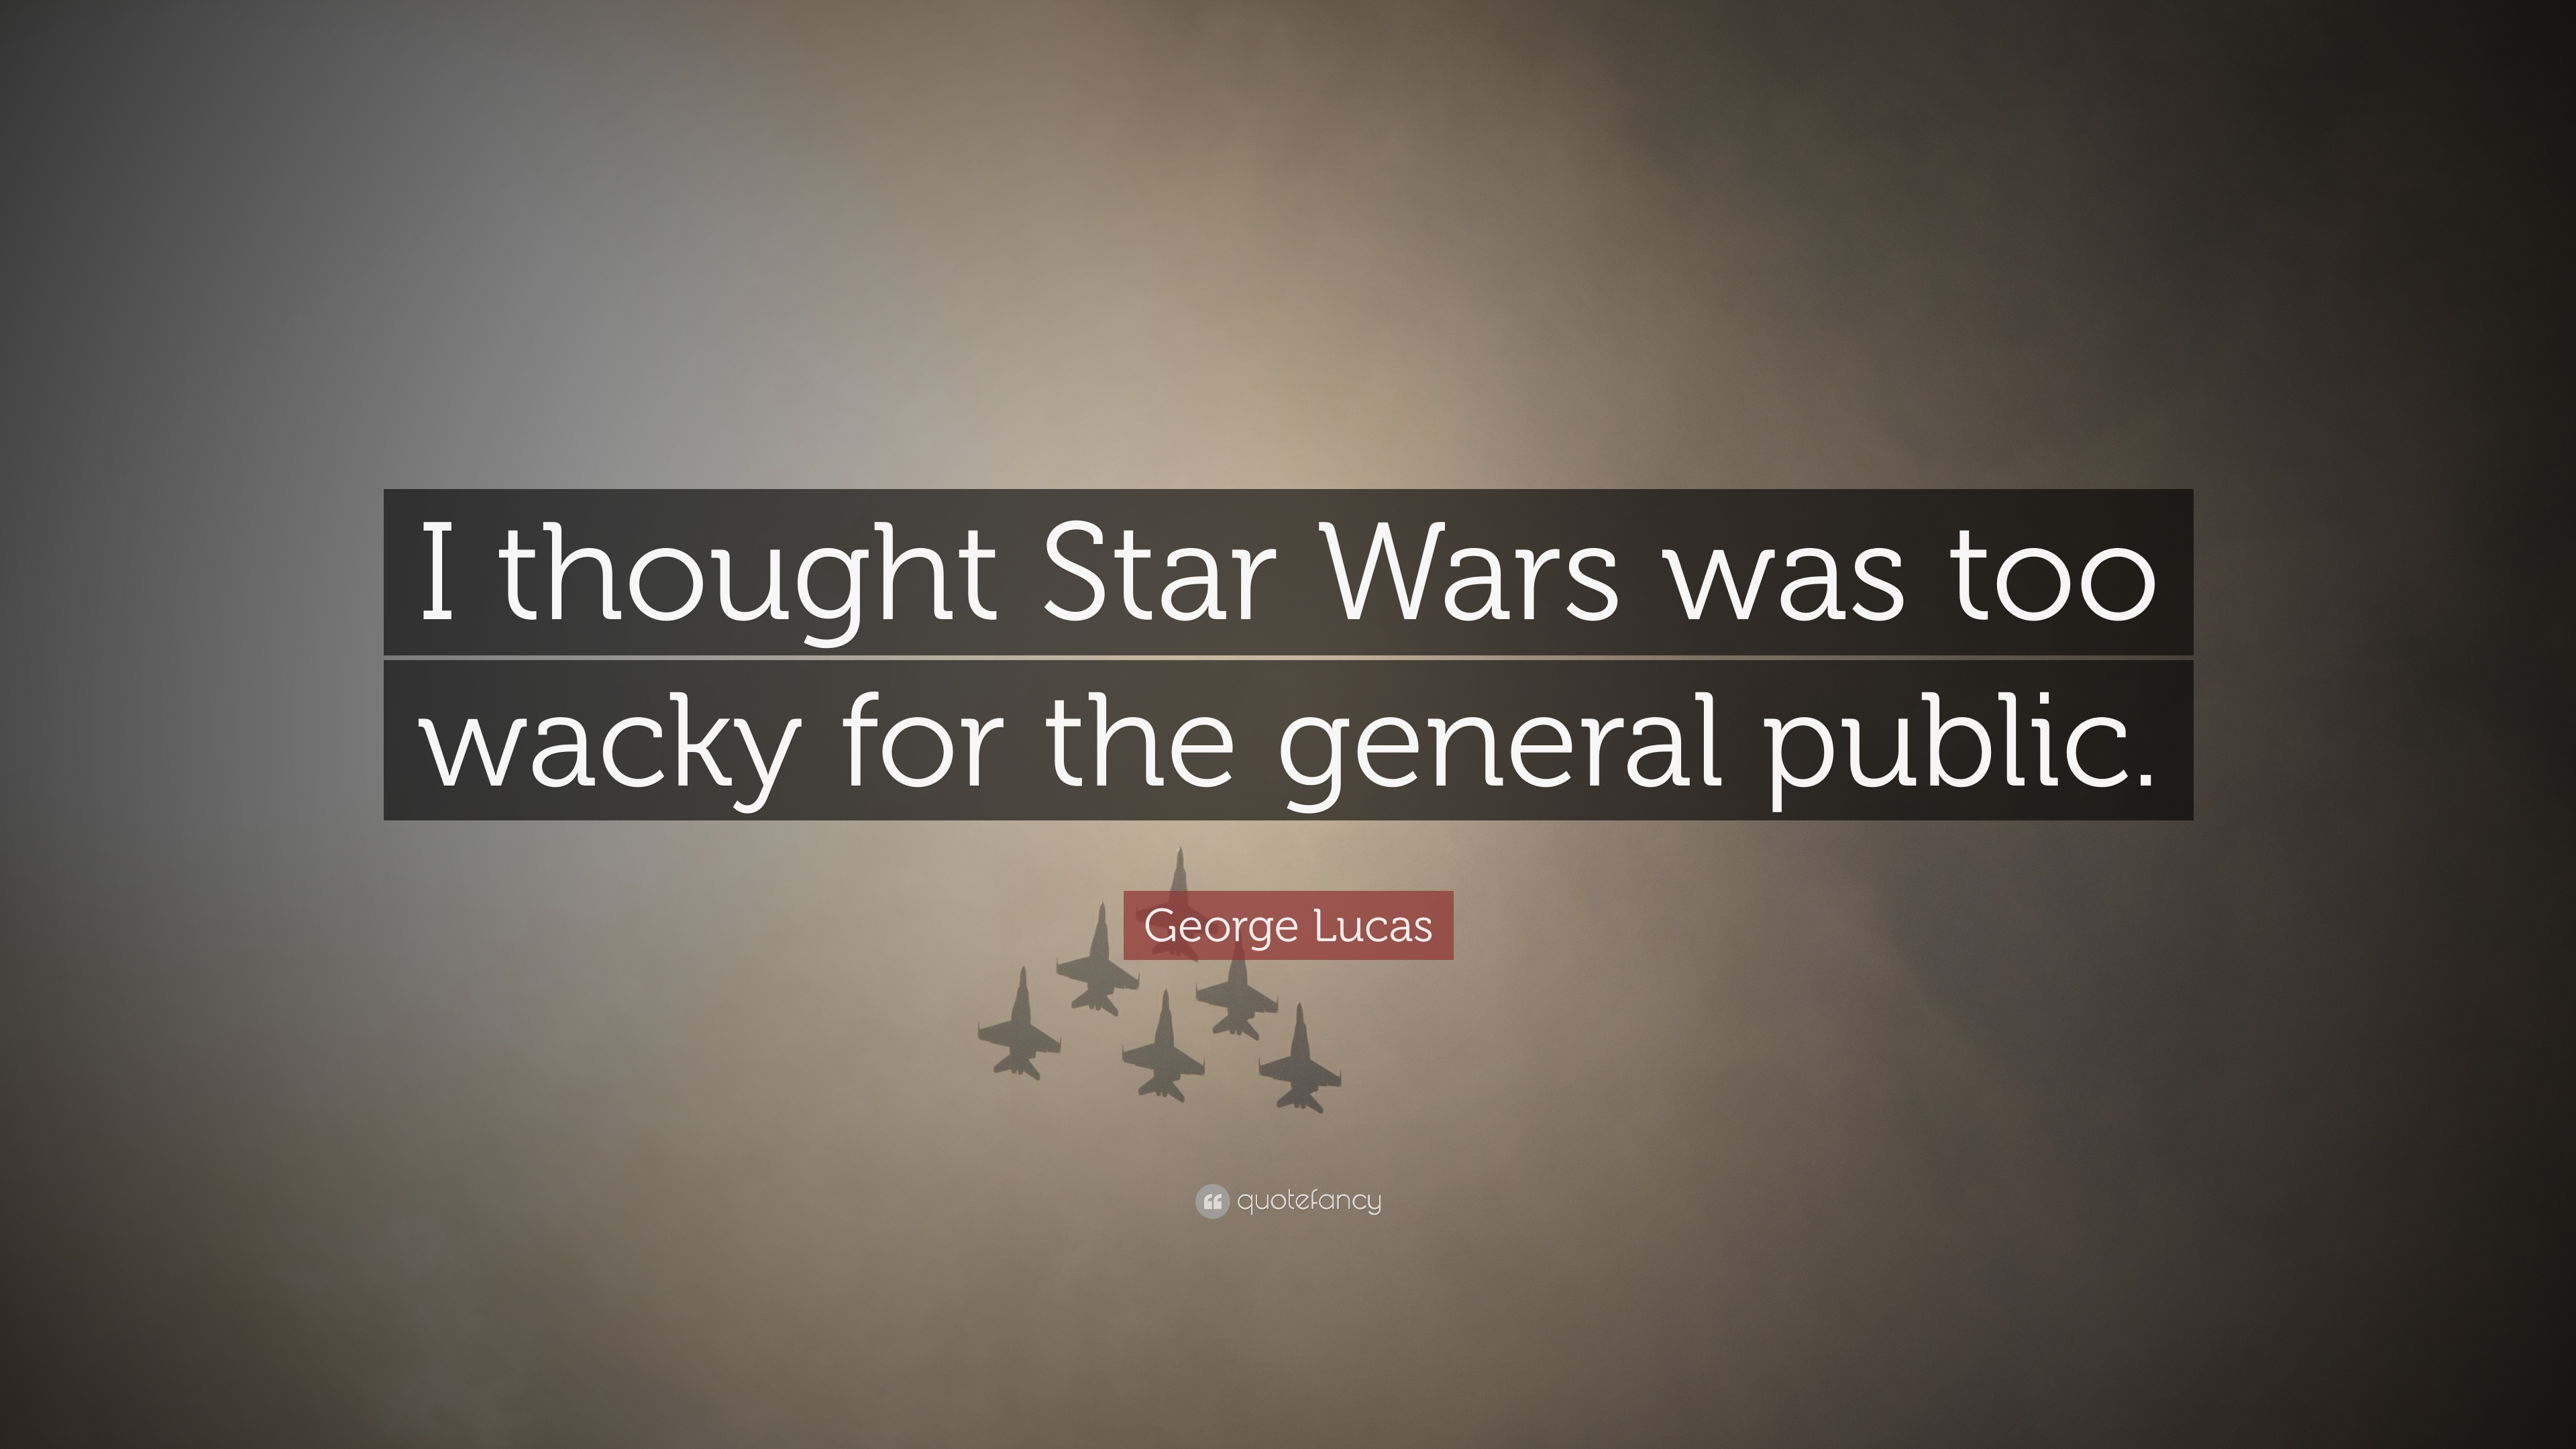 George lucas quotes 100 wallpapers quotefancy - Star wars quotes wallpaper ...